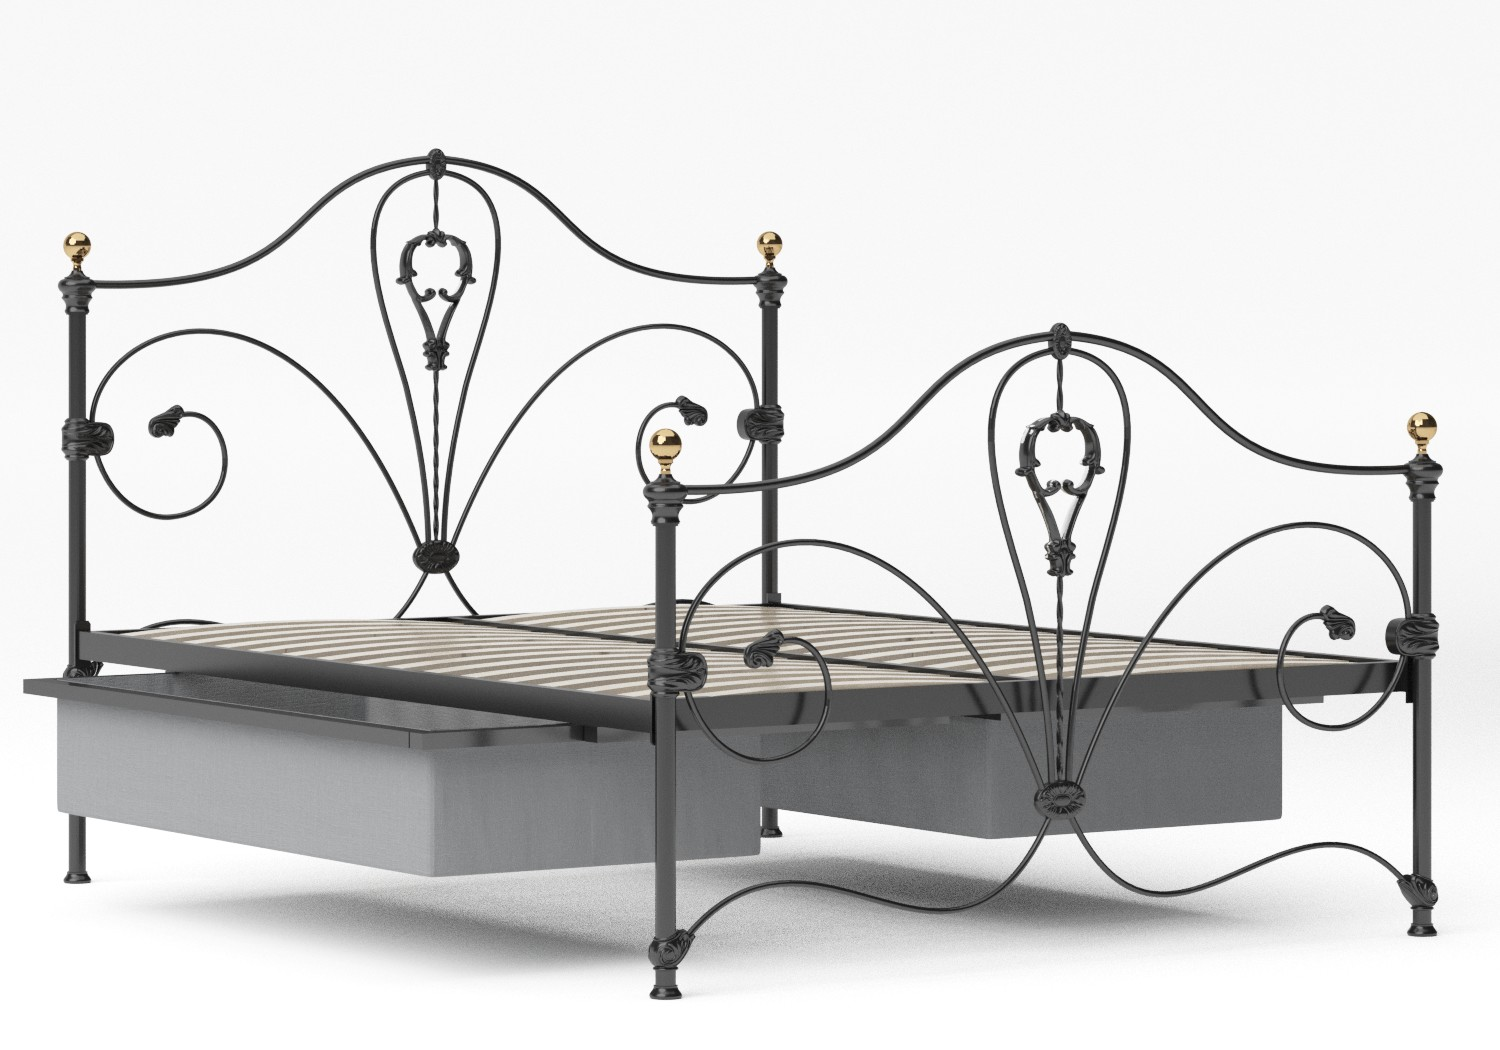 Melrose Iron/Metal Bed in Satin Black with Brass details shown with underbed drawer